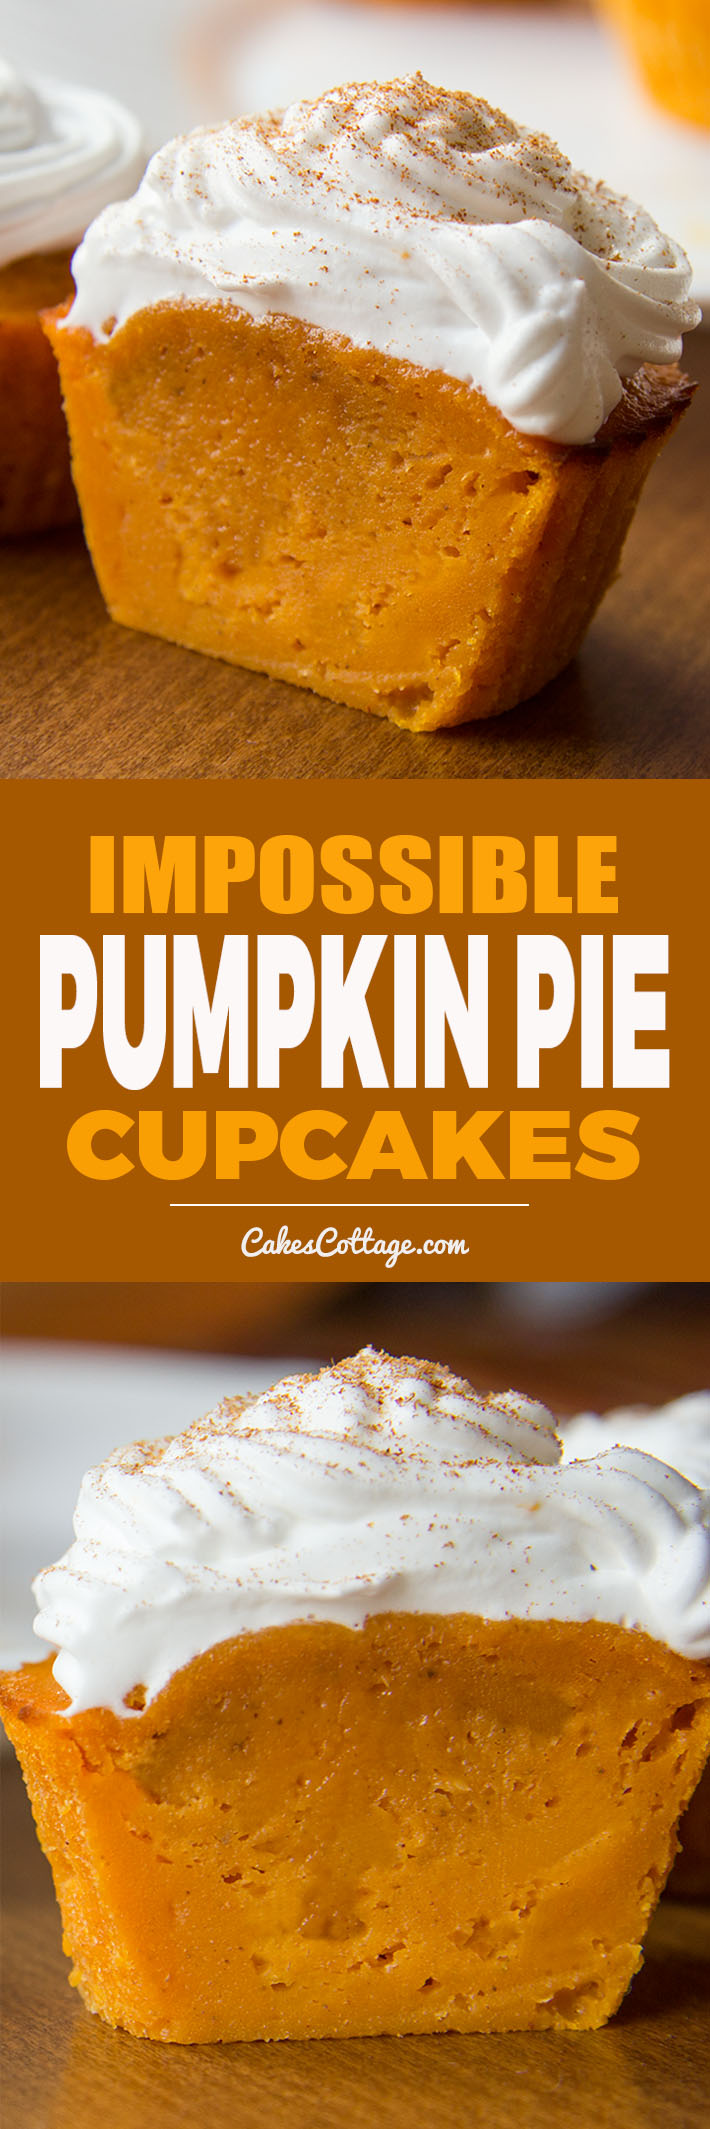 Impossible Perfect Fall treat! De-lic-ious Pumpkin Pie Cupcakes